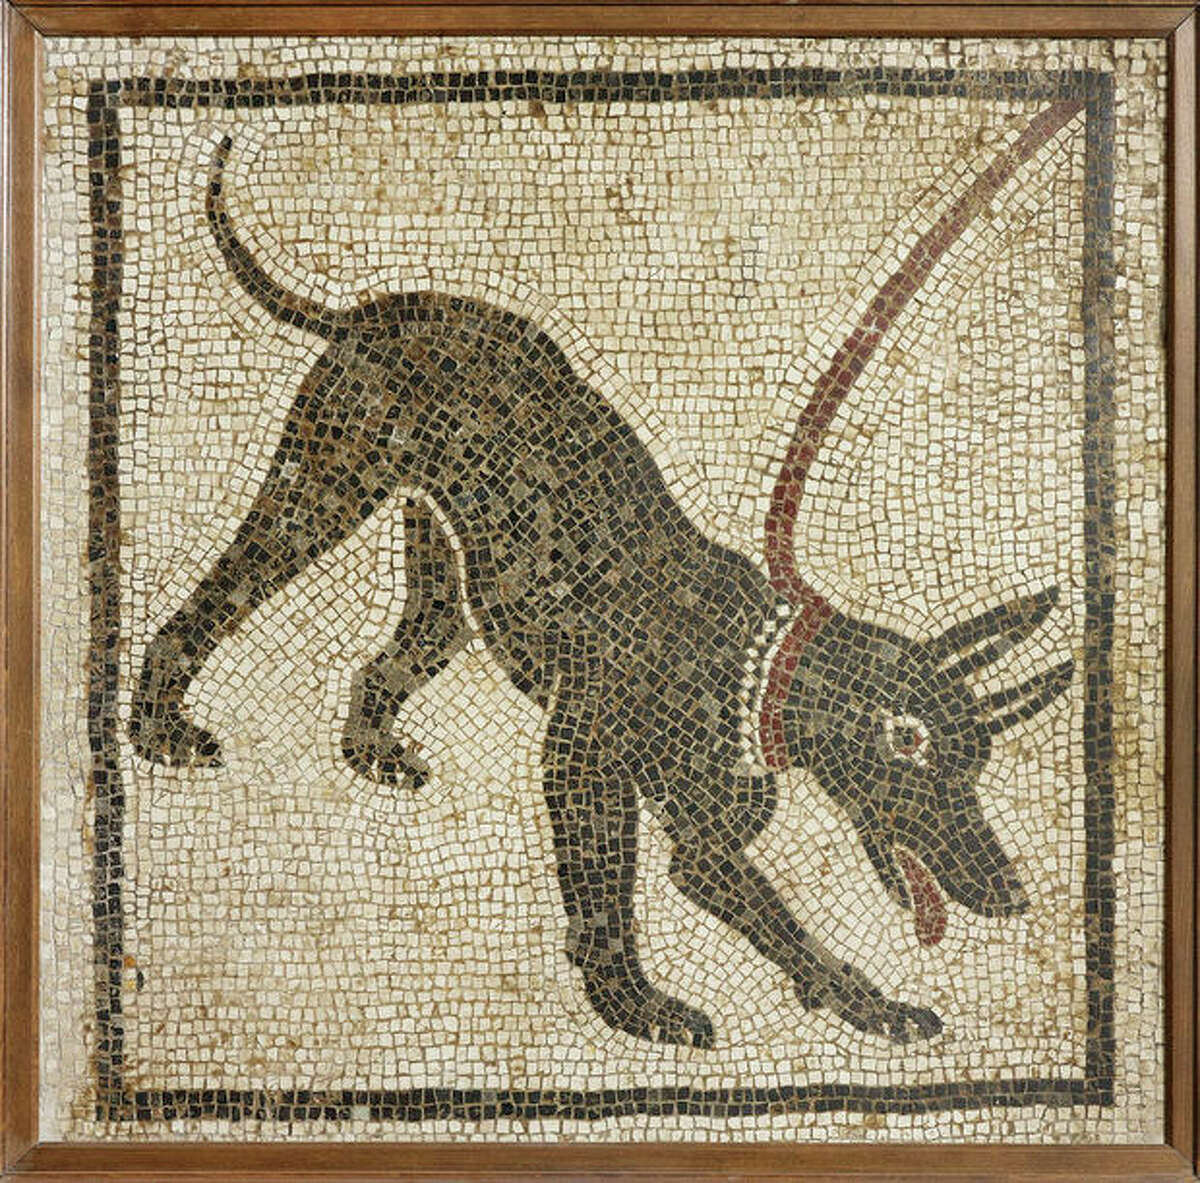 Undated handout photo issued by the British Musuem Thursday Sept. 20, 2012 of a mosaic of a guard dog from the House of Orpheus, Pompeii, 1st century AD, Italy as dozens of objects recovered from the ruins of Roman cities Pompeii and Herculaneum will go on show outside Italy for the first time at a new exhibition at the museum. The two cities on the Bay of Naples were wiped out by the eruption of Mount Vesuvius in 79 AD. The show will feature objects found in their ruins including jewellery, carbonised food and a baby?'s crib that still rocks on its curved runners. The exhibition will run March 28 to Sept. 29, 2013. (AP Photo/The Trustees of the British Museum)